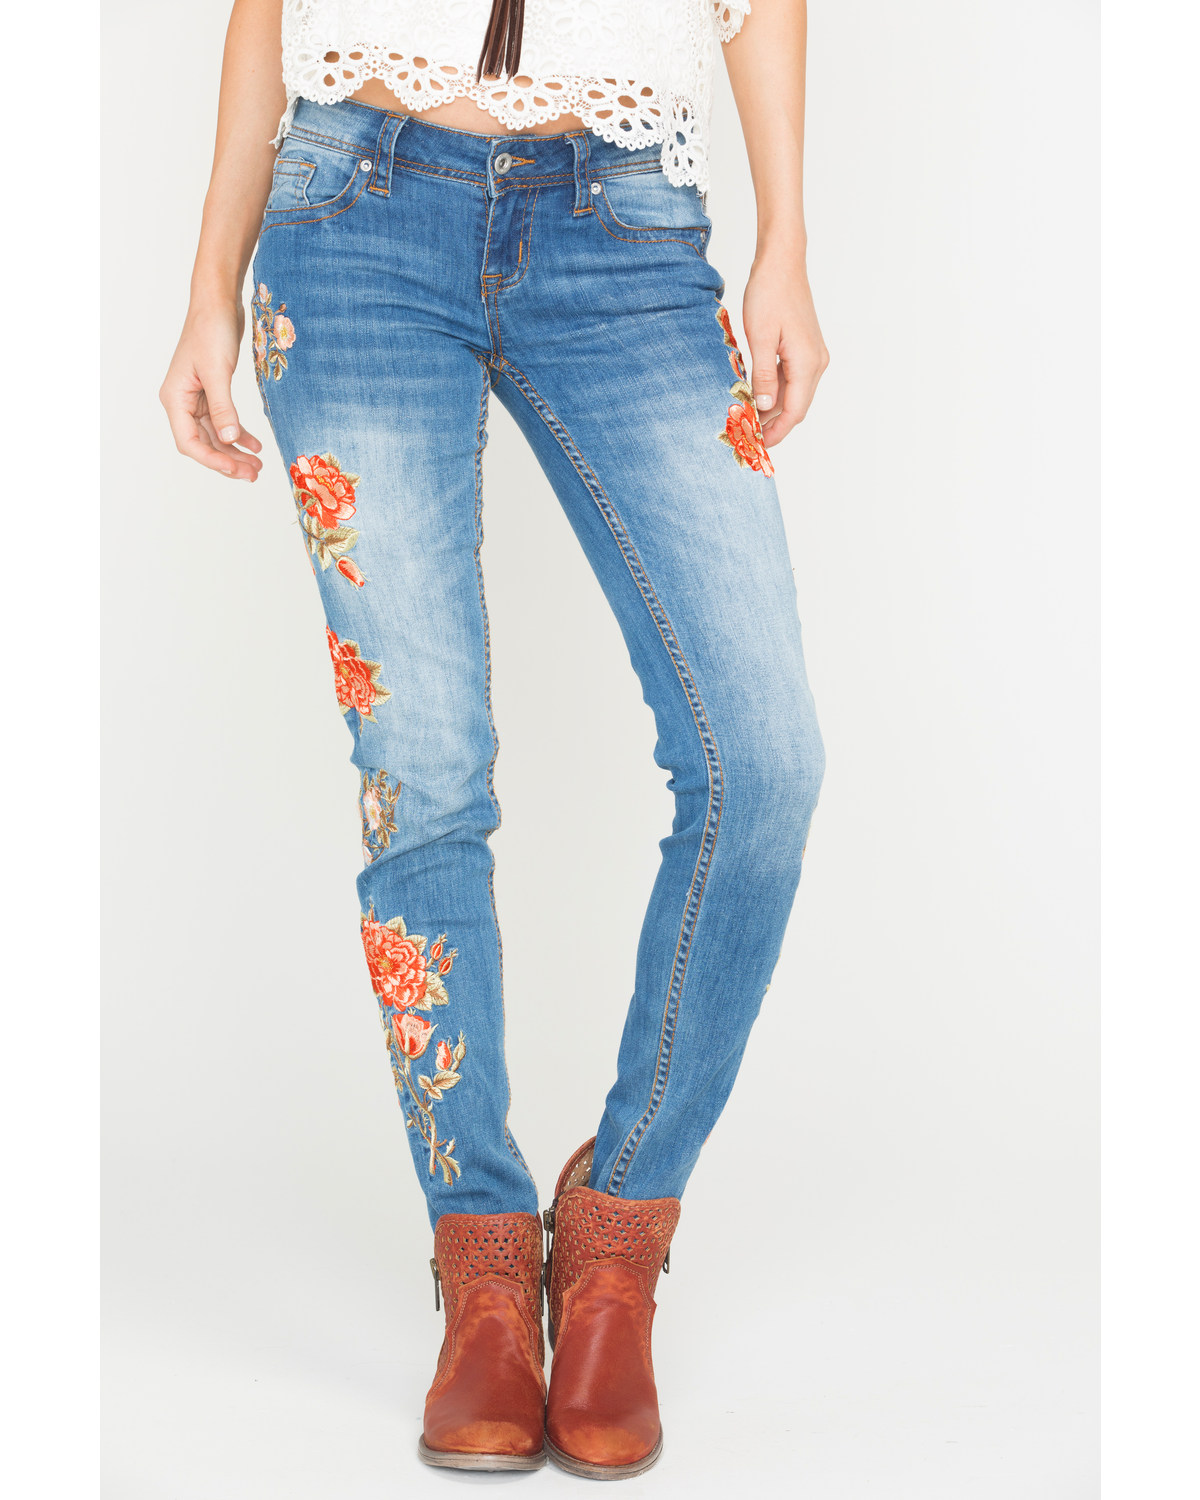 251fa03cca869 Grace in LA Women s Floral Embroidered Skinny Jeans